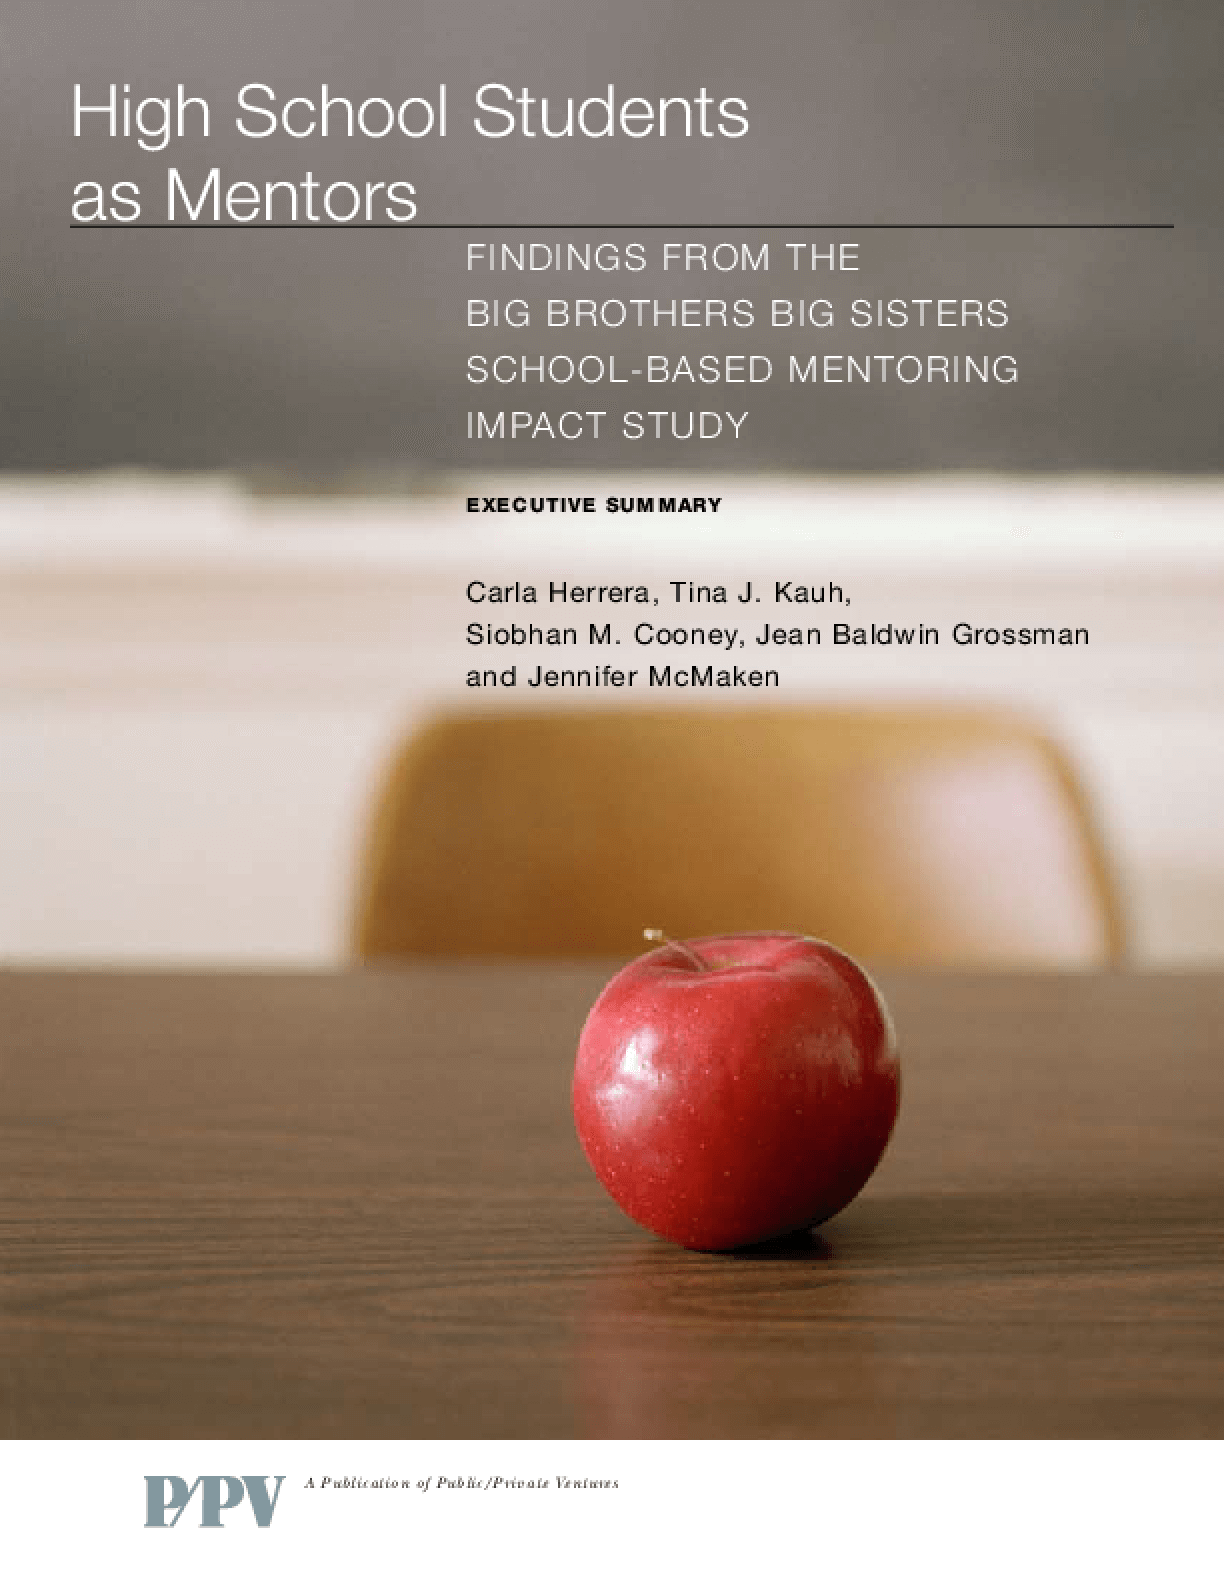 High School Students as Mentors: Findings From the Big Brothers Big Sisters School-Based Mentoring Impact Study Executive Summary